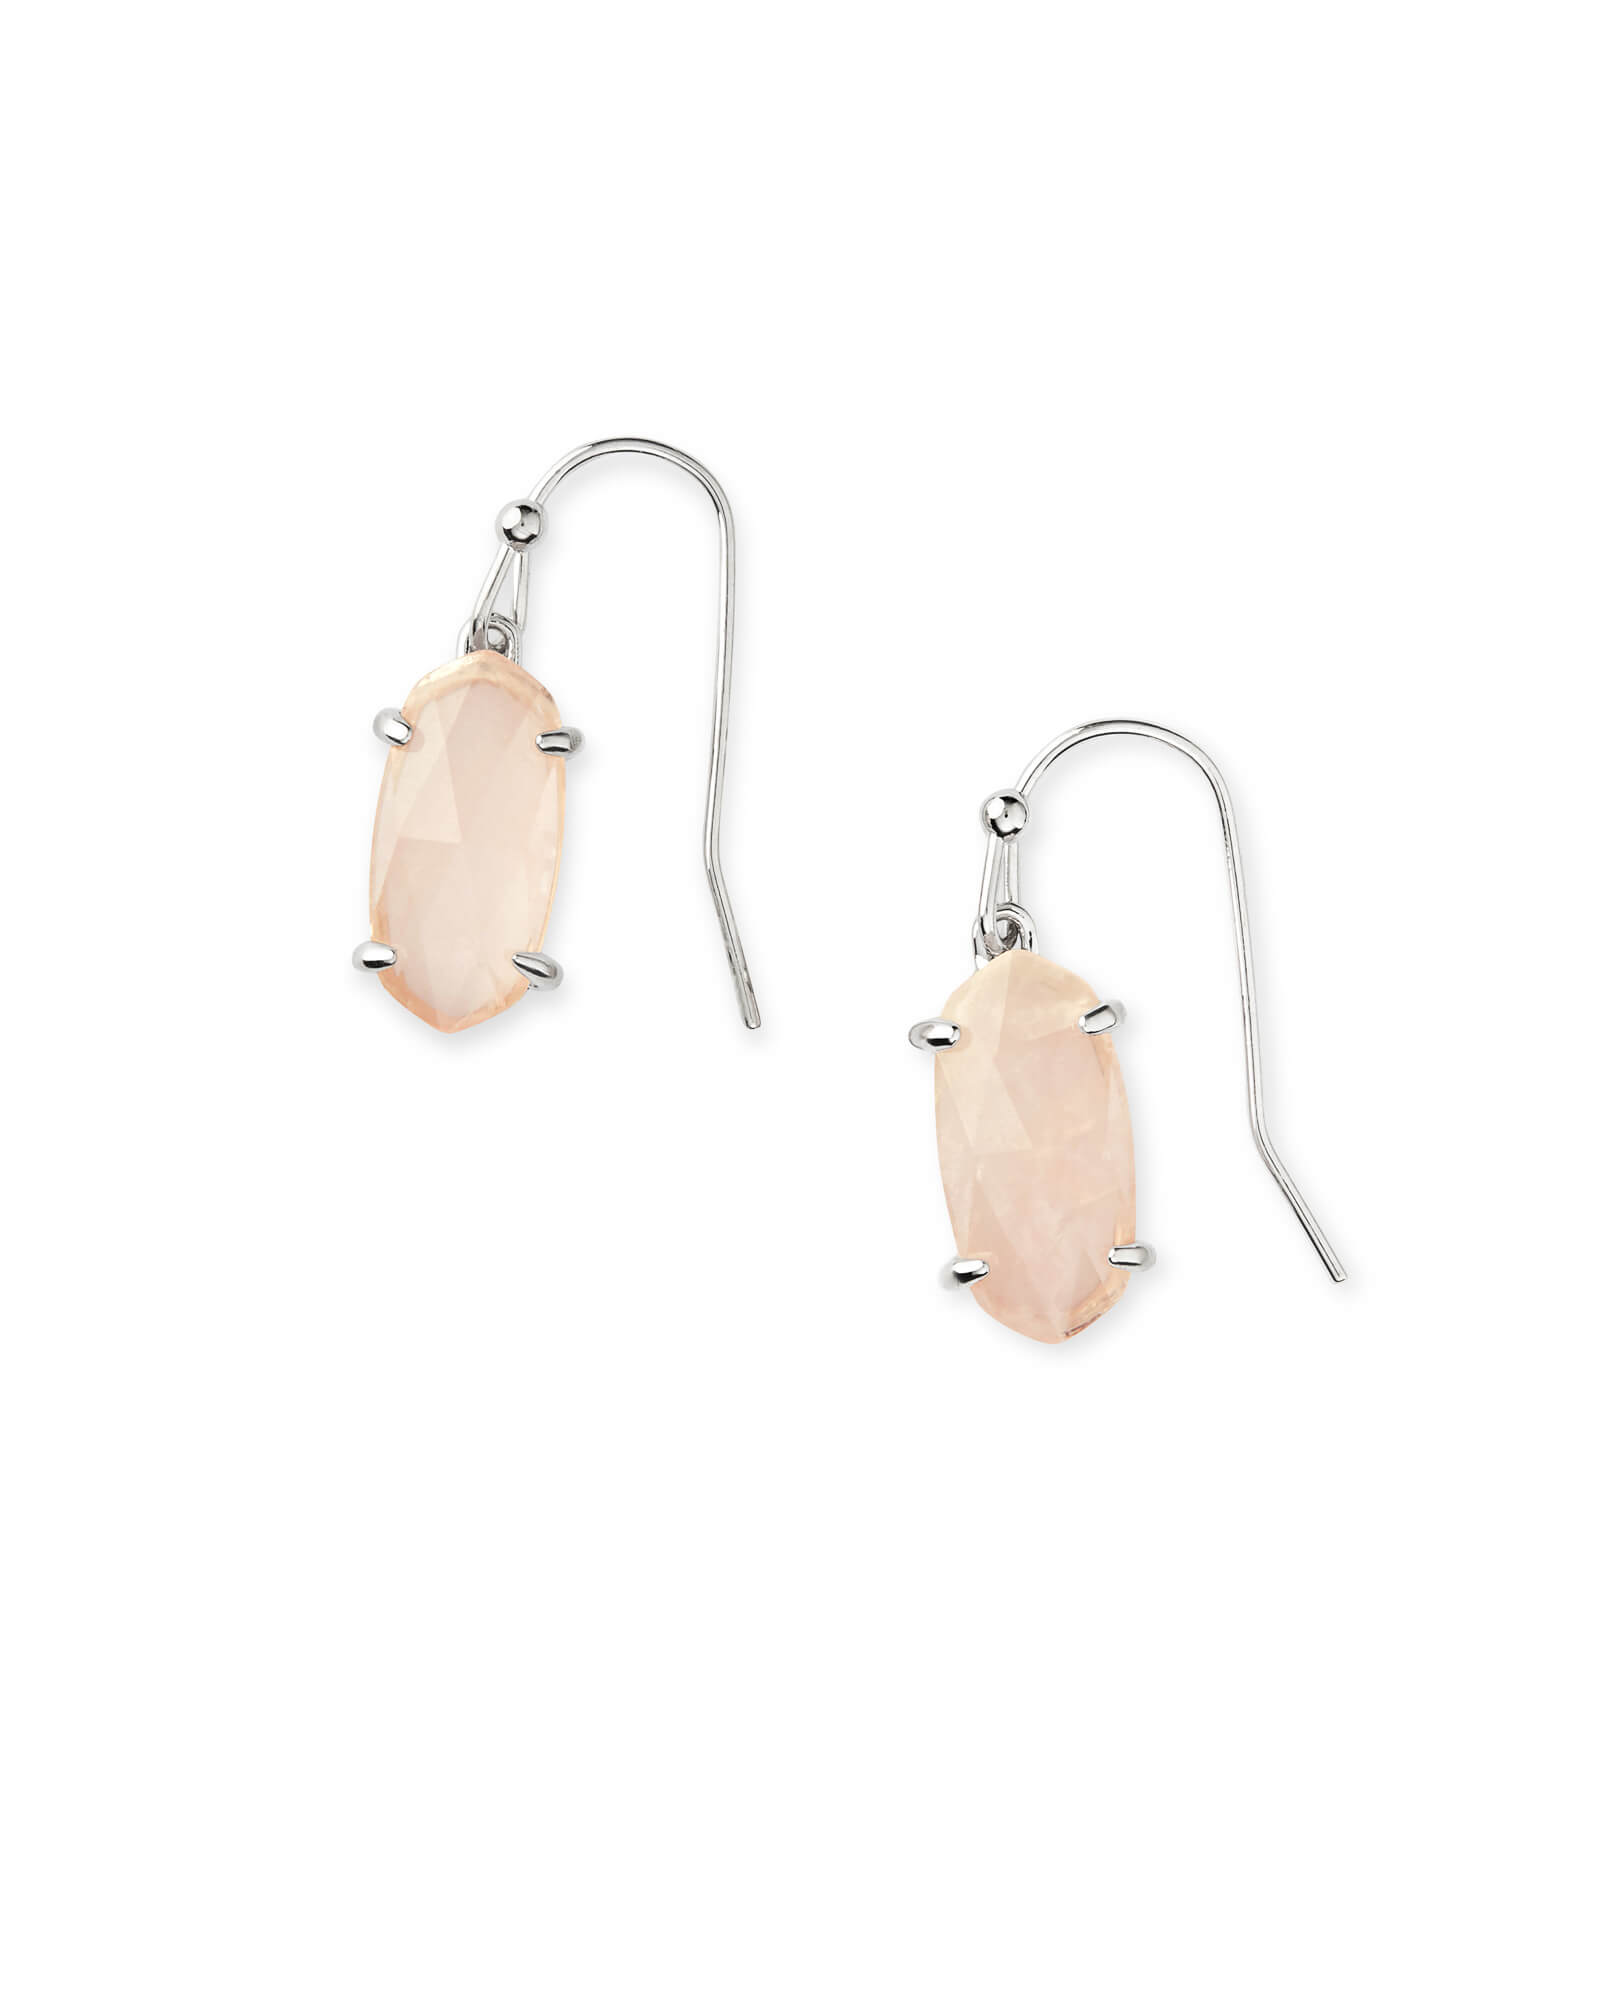 Lemmi Silver Drop Earrings in Rose Quartz